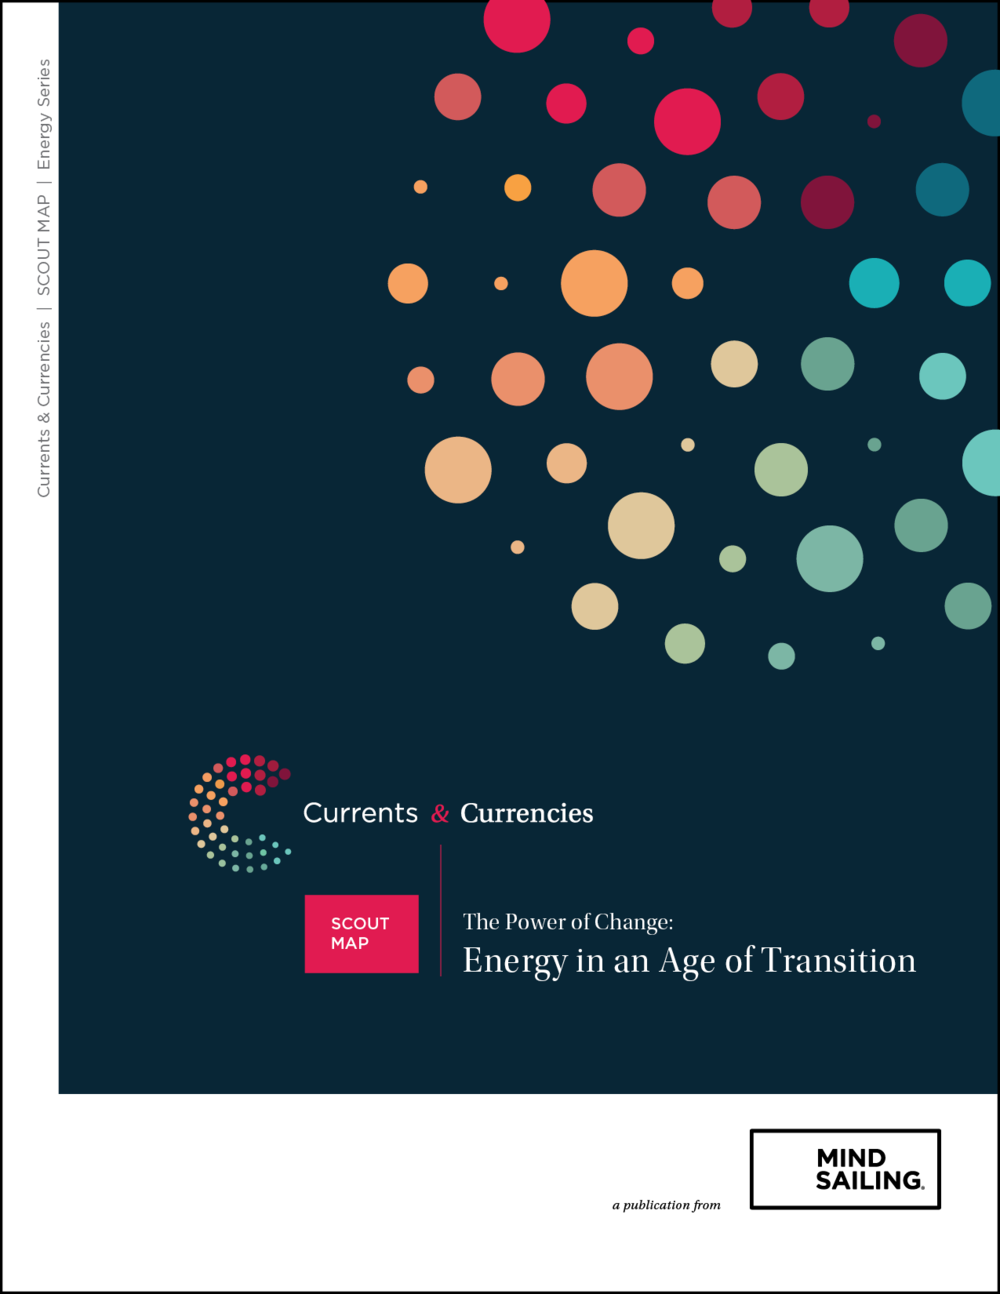 Mindsailing_Energy White Paper_Cover.png